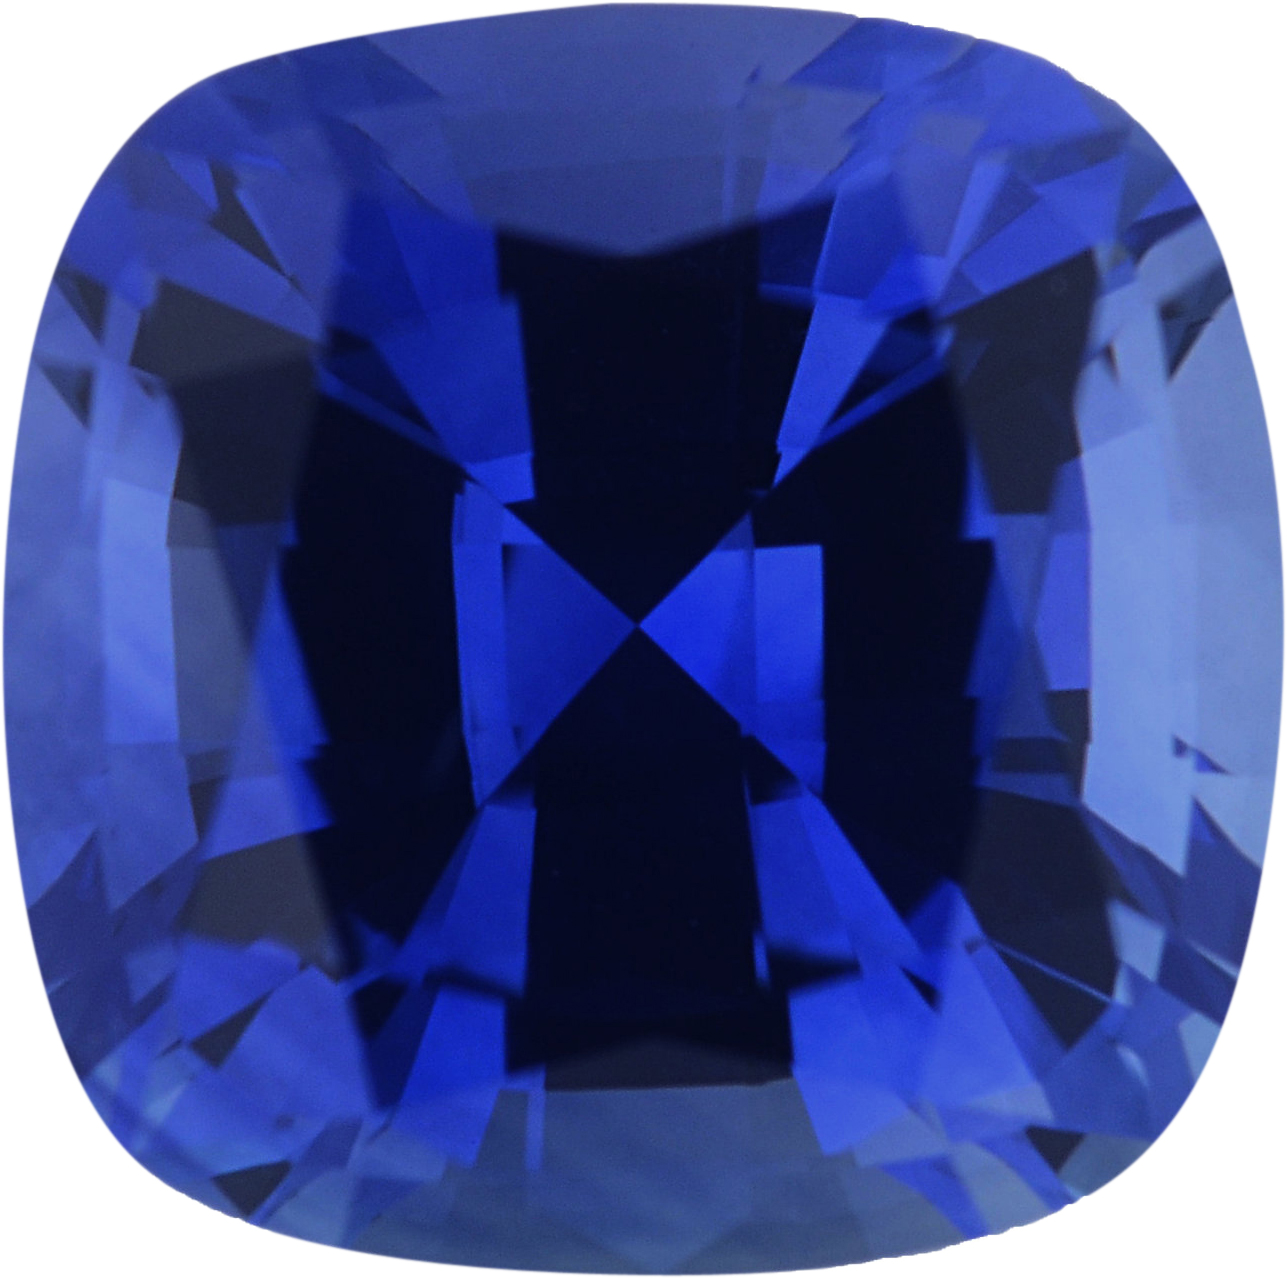 6.47 x 6.45 mm, Blue Loose Sapphire Gemstone in Antique Square Cut, Violetish Blue, 1.49 carats